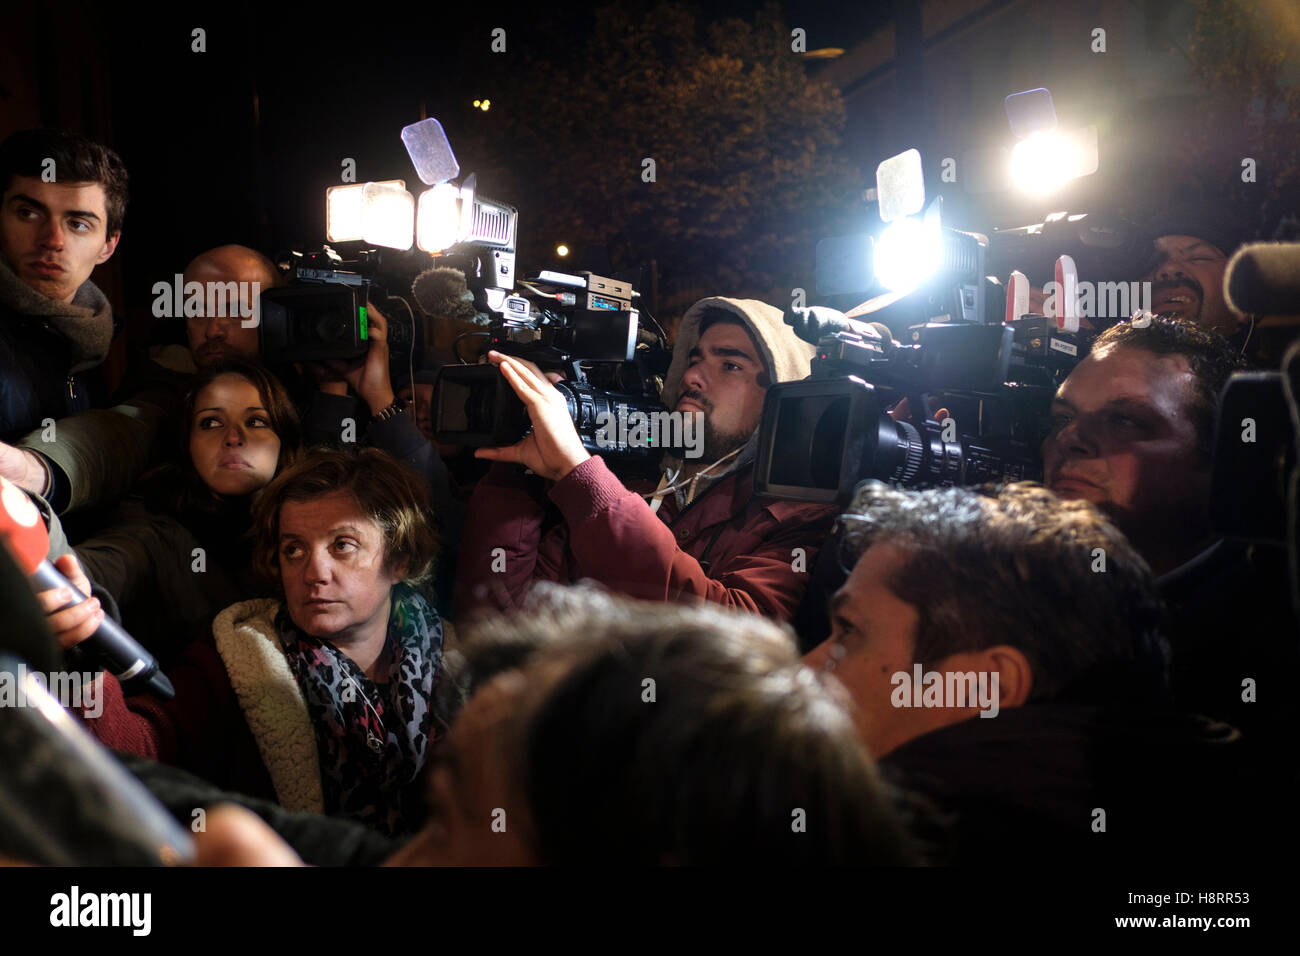 News cameramen covering an event at night - Stock Image